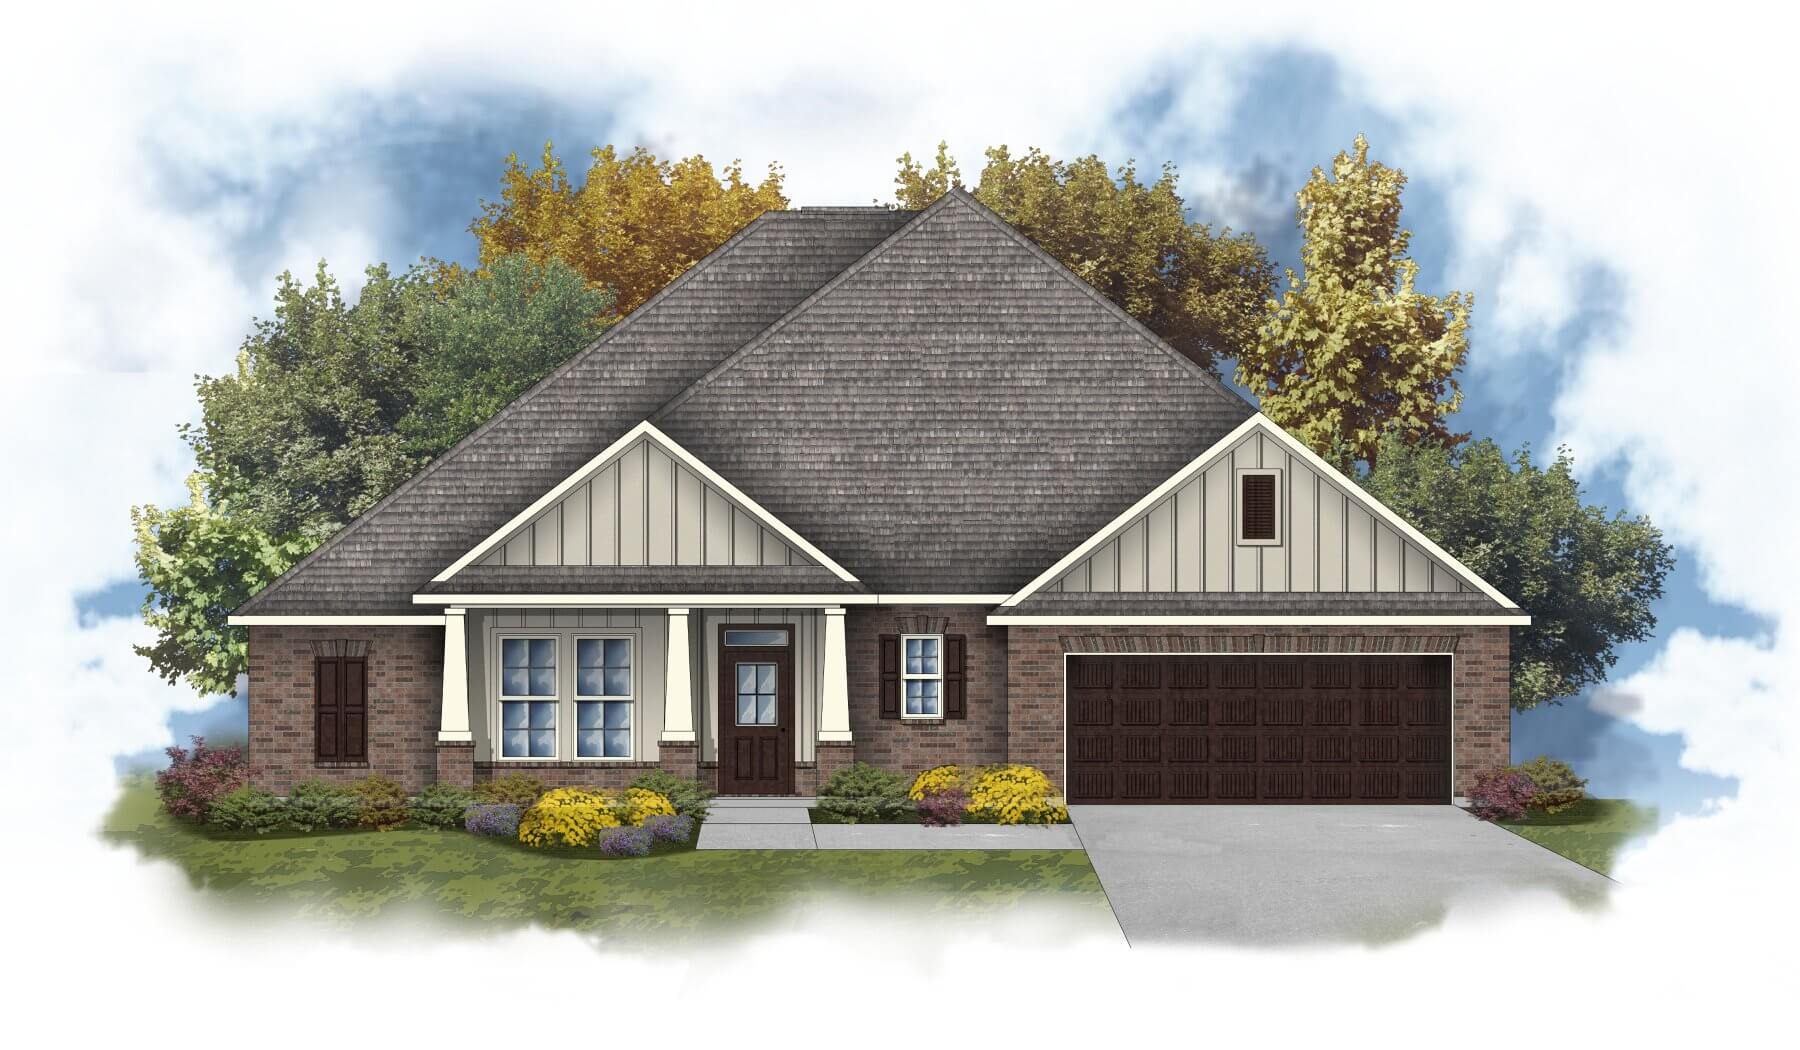 Homes For Sale In Red Barn Road Estates In Fairhope Urban Property